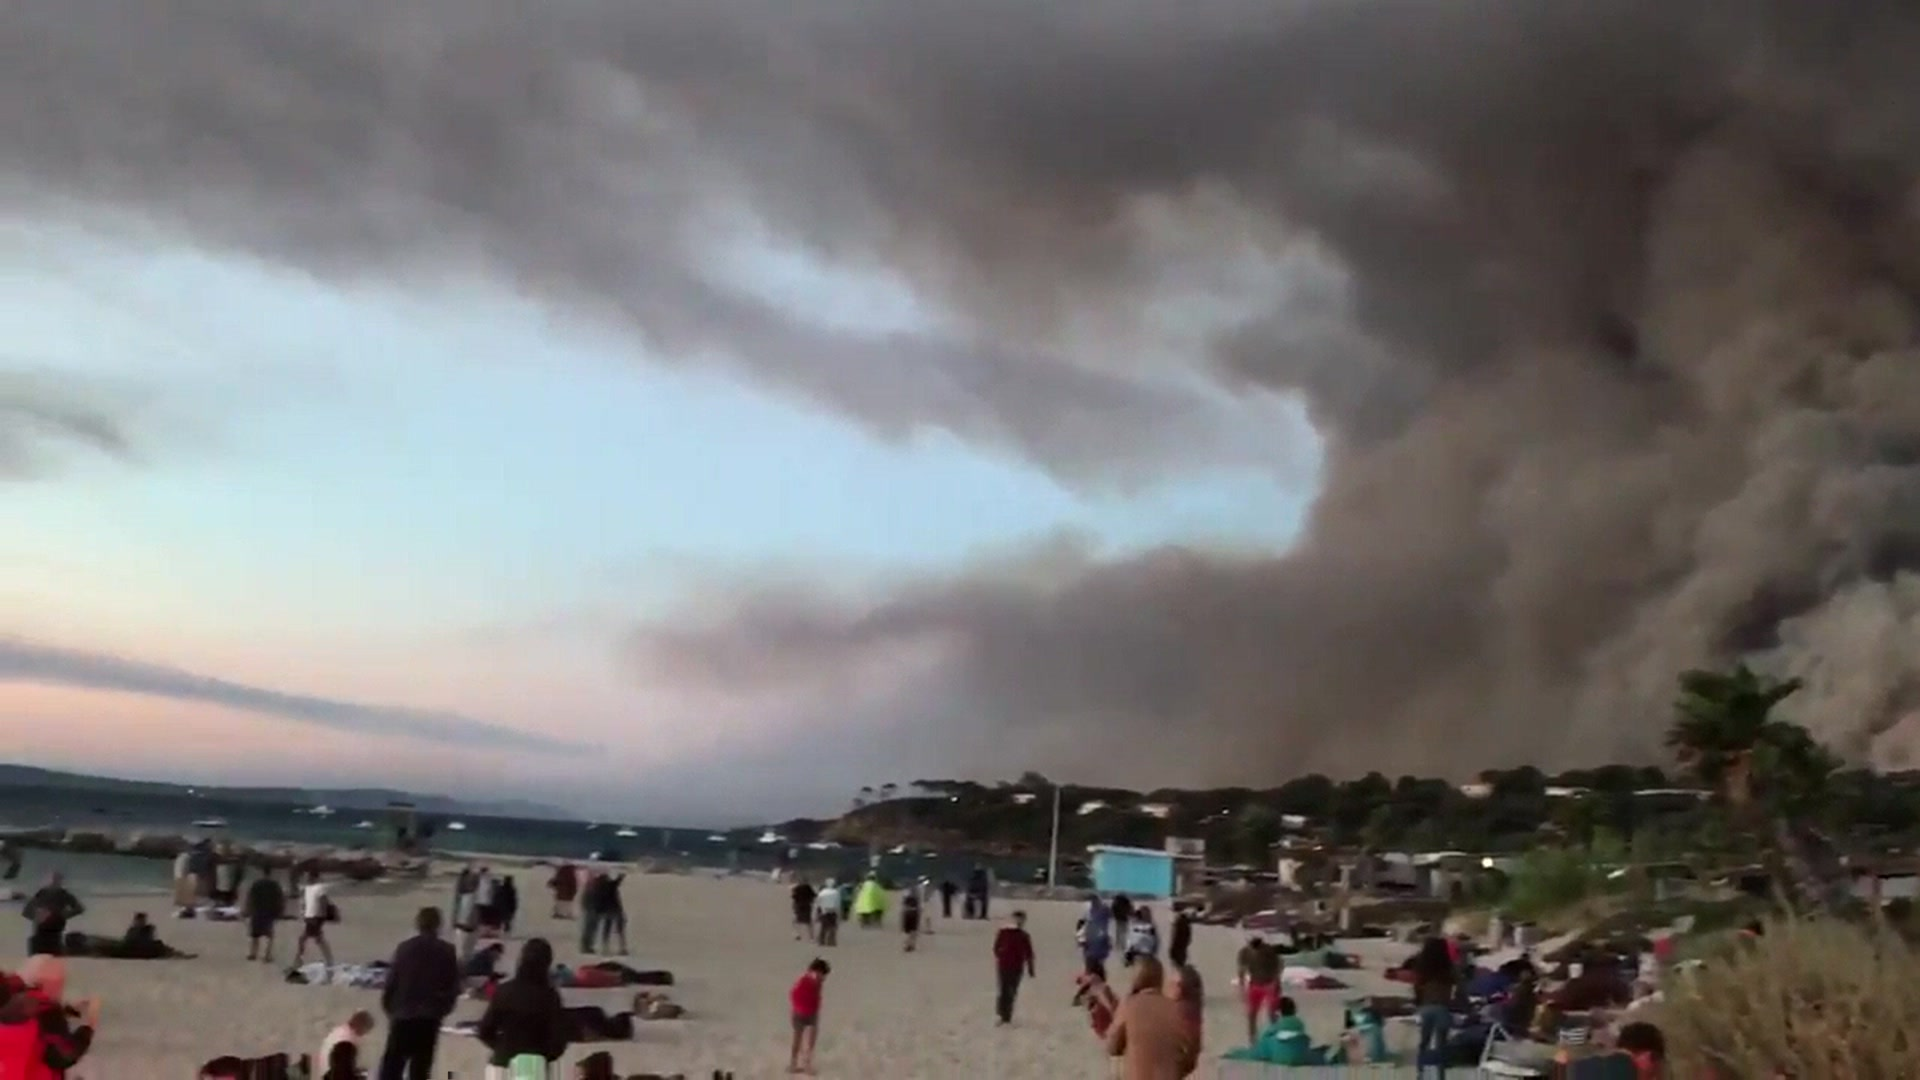 France wildfires force mass evacuation